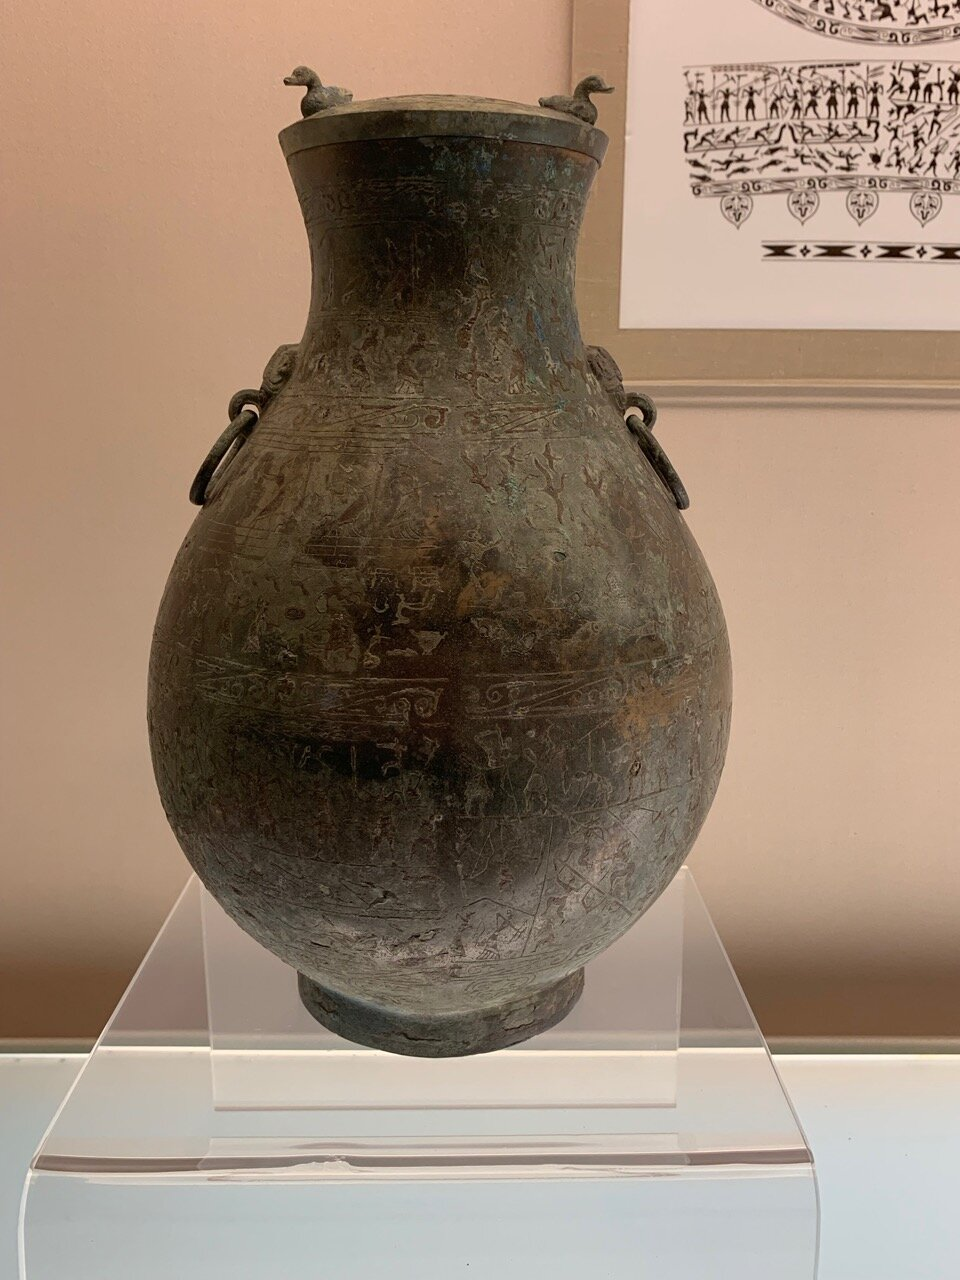 Hu Wine Vessel with Inlaid Pictorial Design, Early Warring States (475-mid 4th c BC)